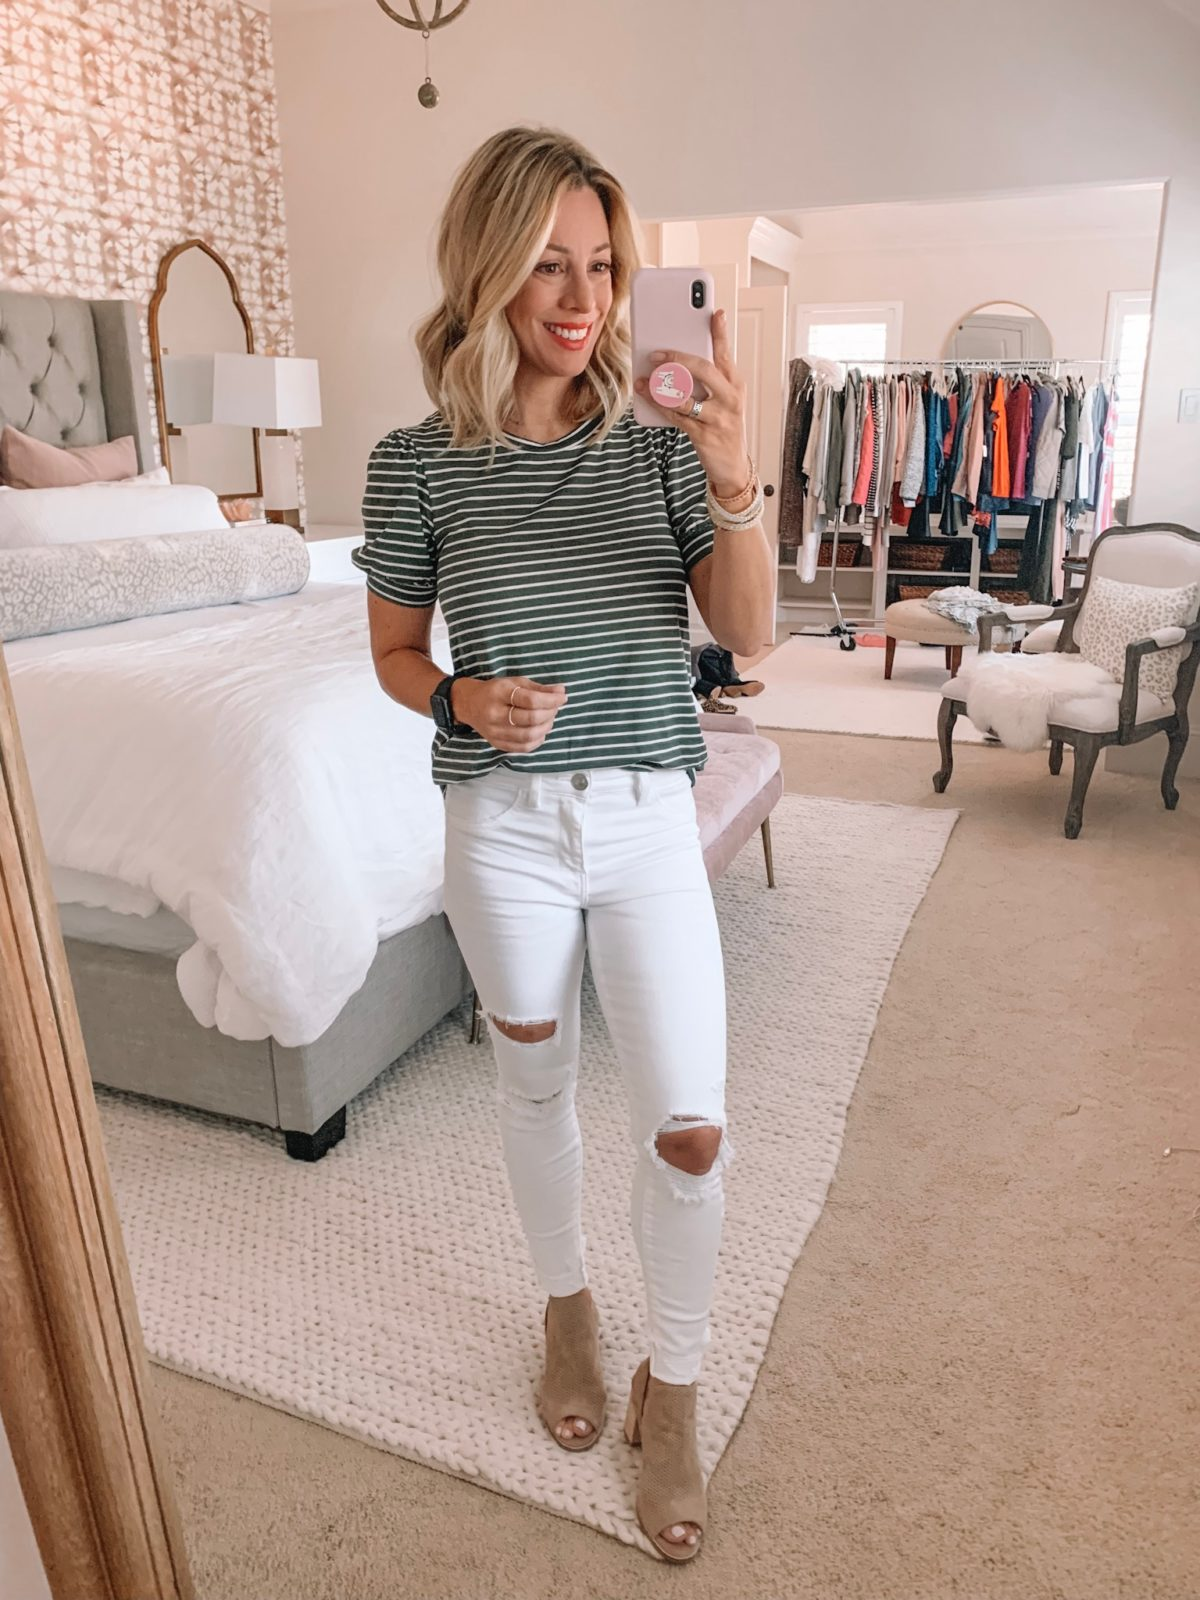 Dressing Room - Green stripe shirt with white jeans